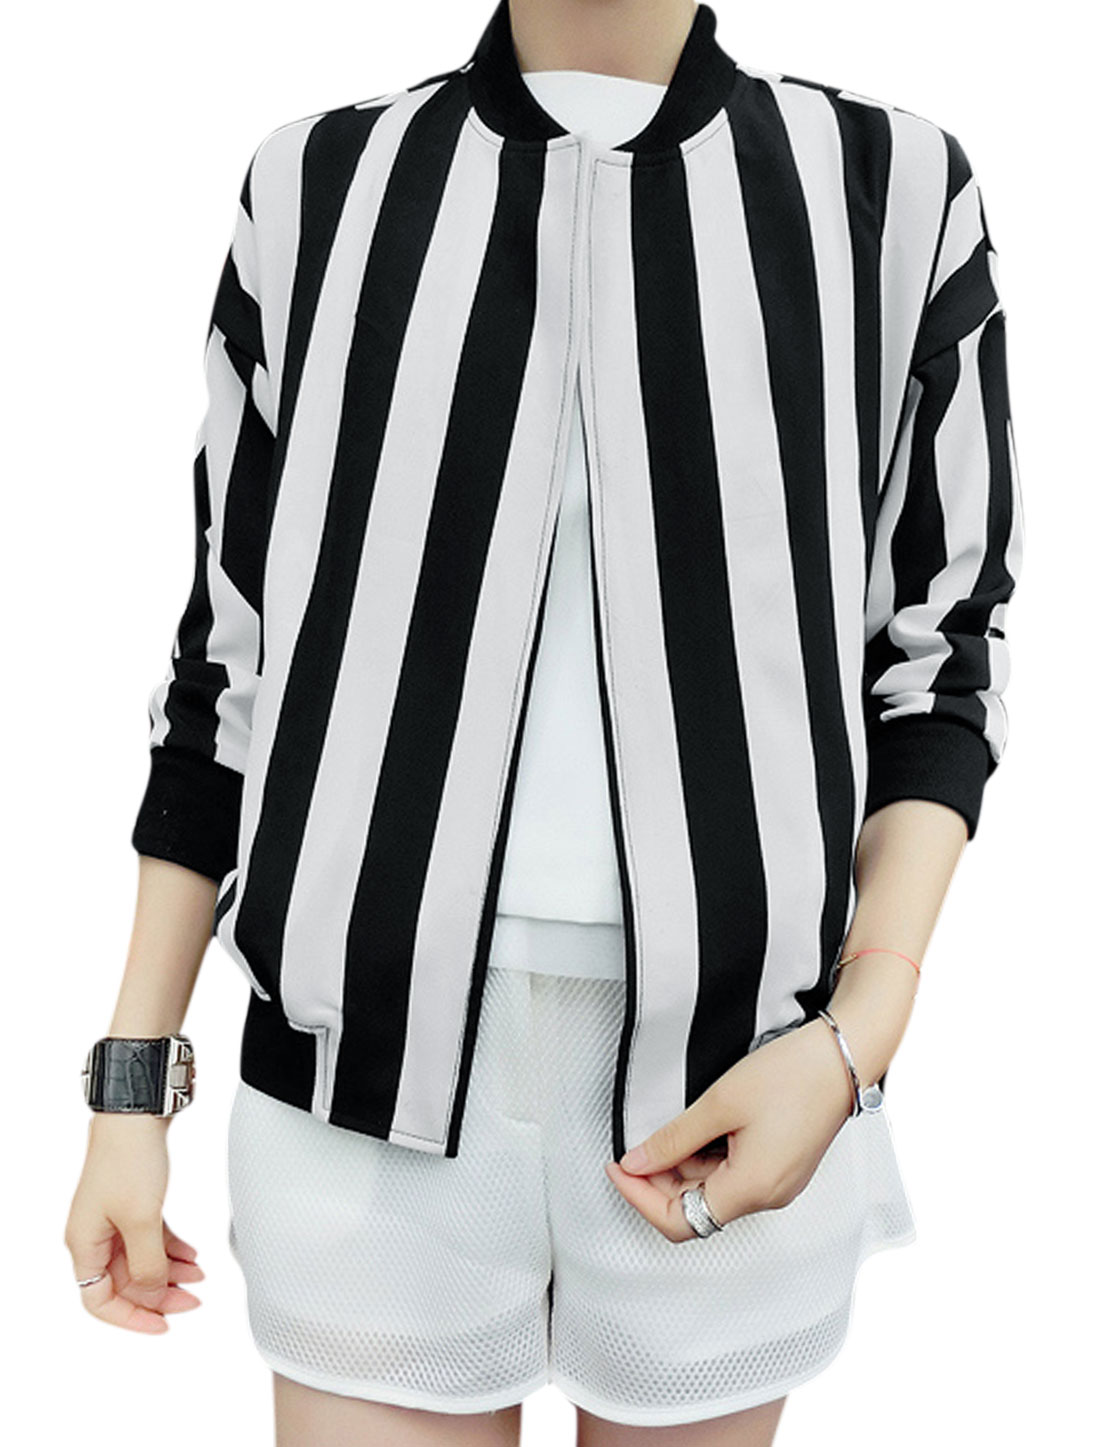 Lady Long Dolman Sleeves Ribbed Trim Fashion Vertical Striped Jacket Black White S